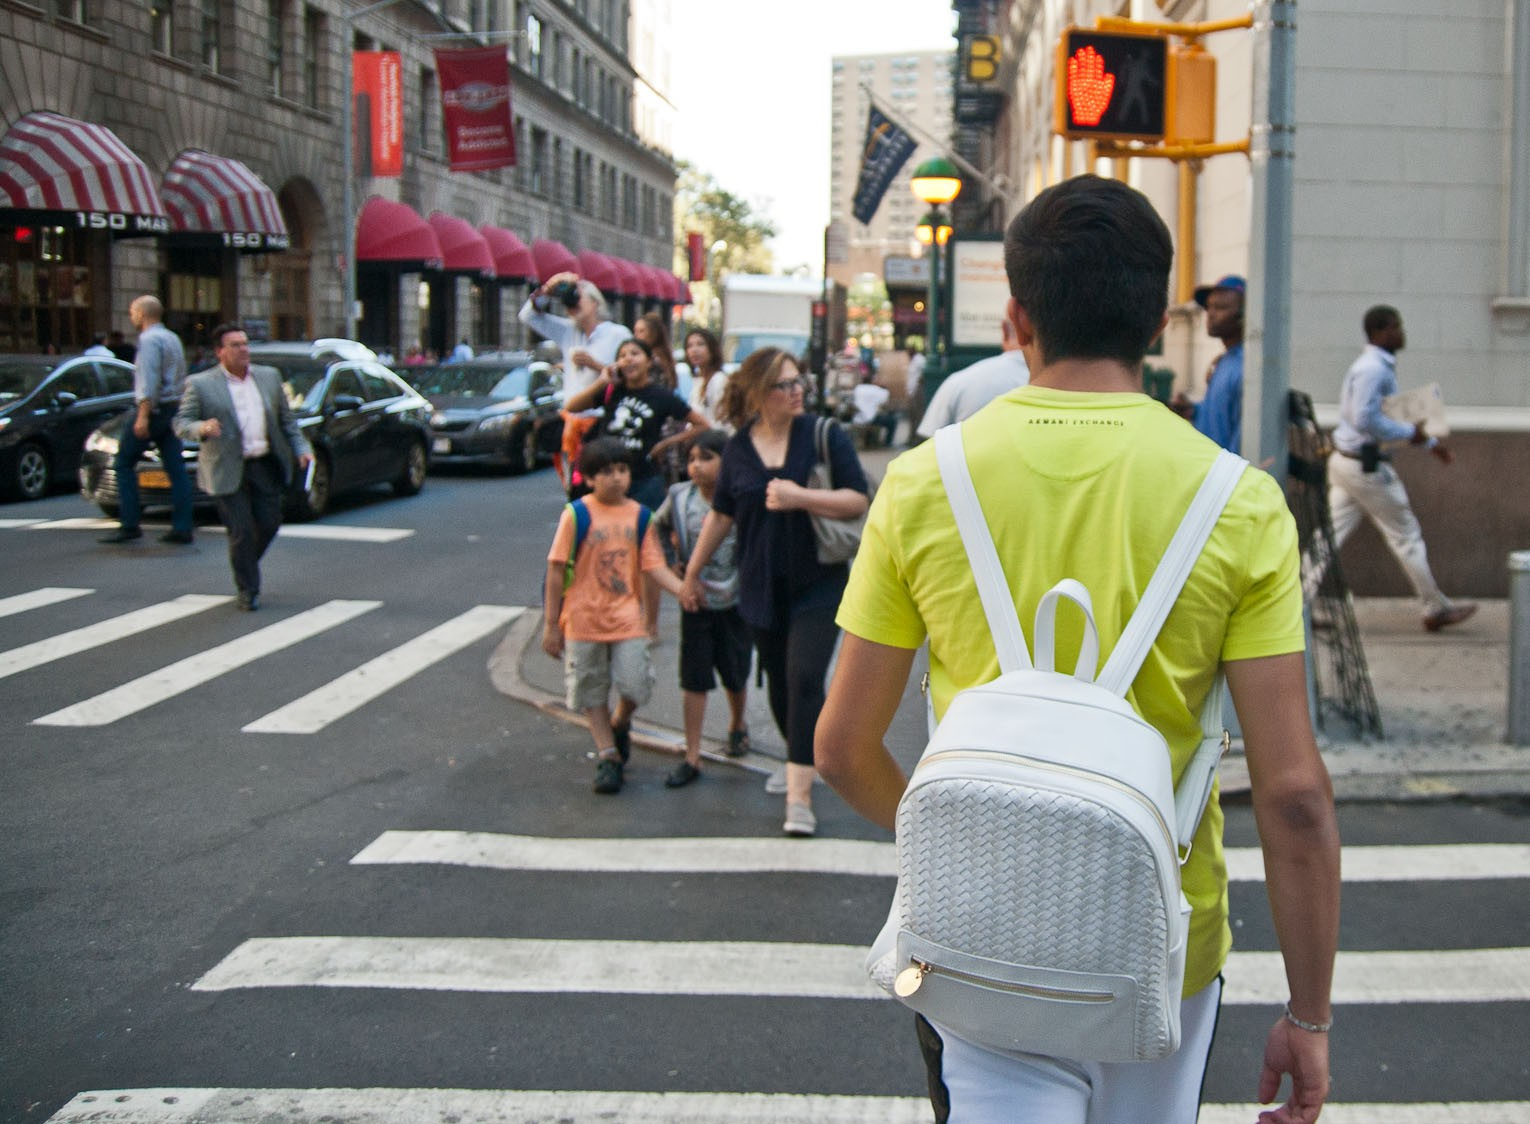 Jaywalkers galore at Fulton and William streets in Manhattan